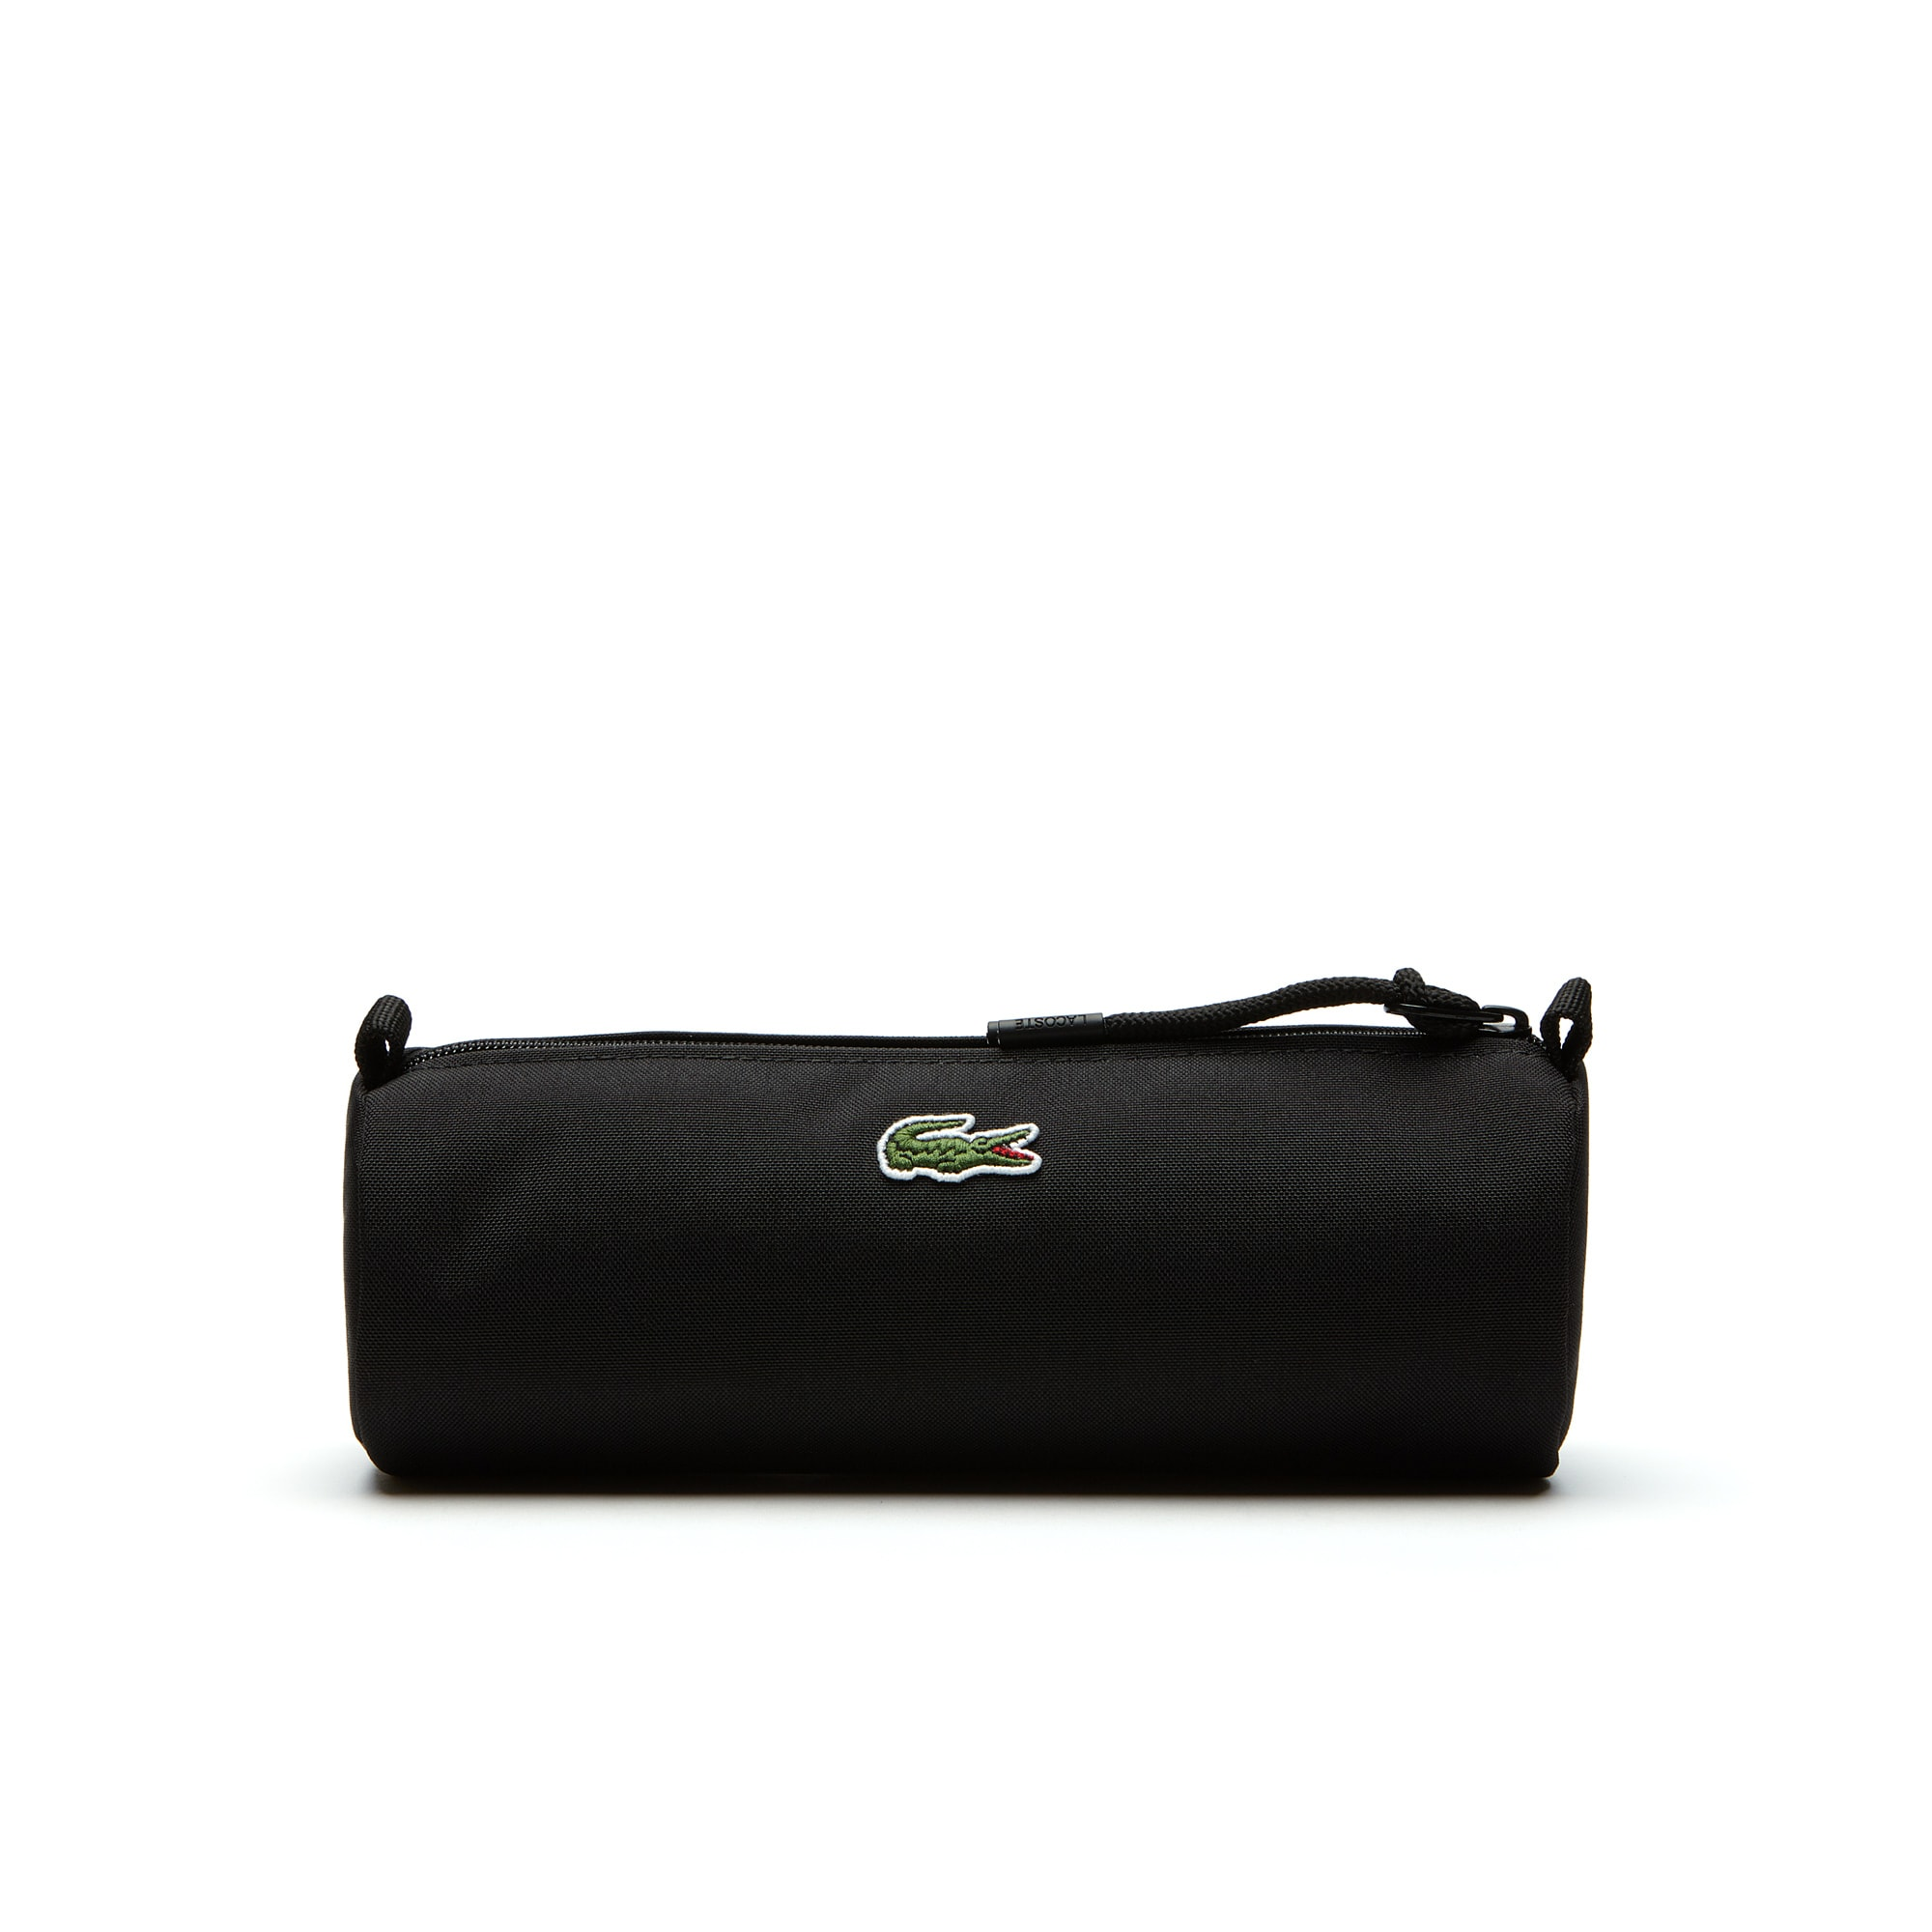 Men's Neocroc Monochrome Zippered Pouch